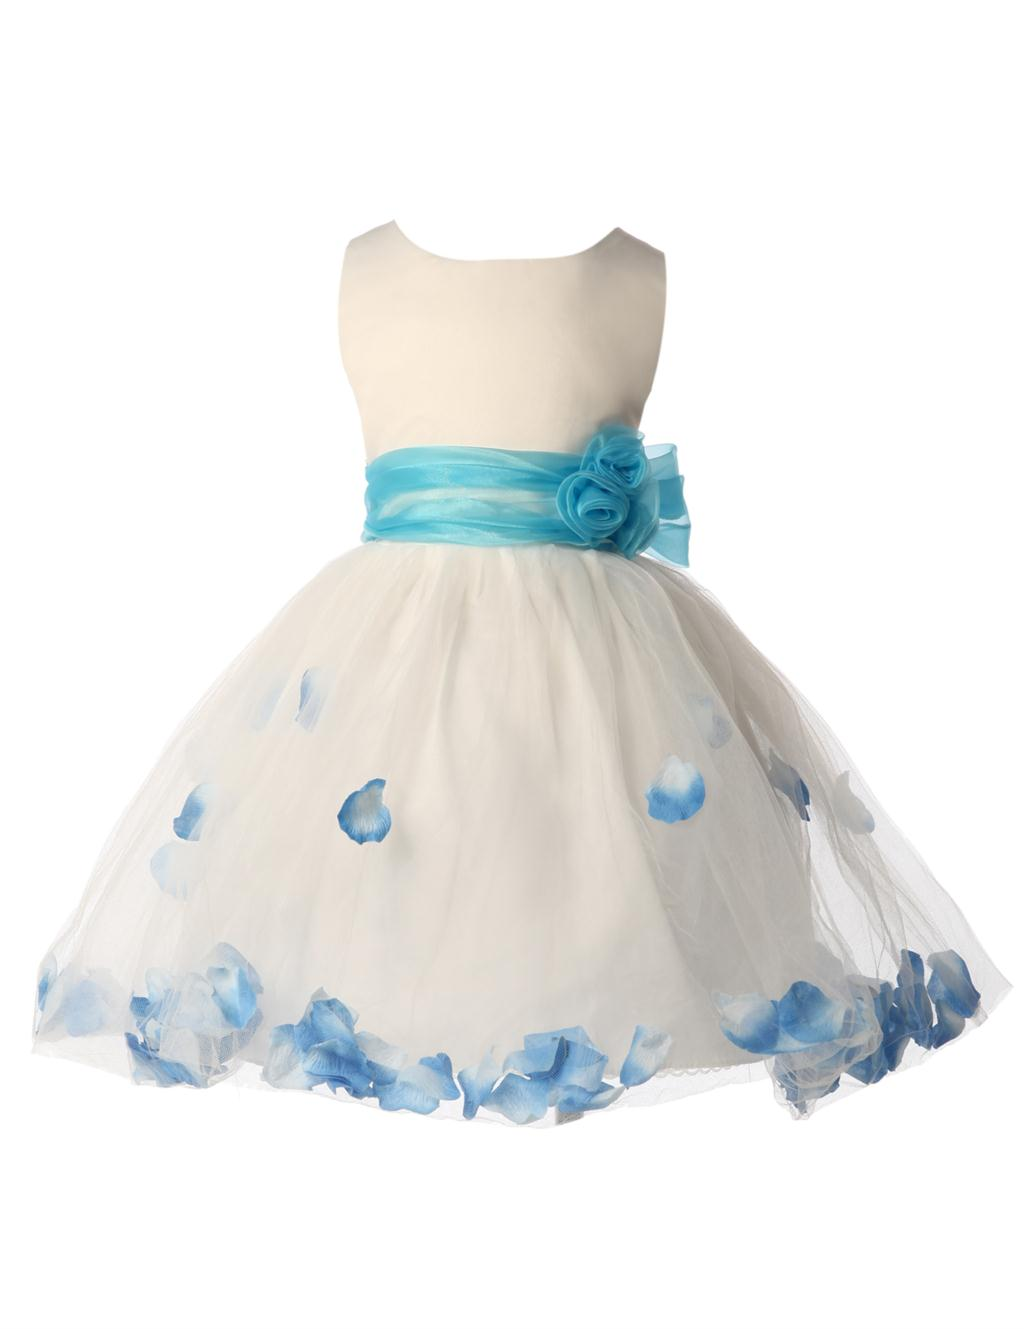 Kids Dream Flower Girl Dresses 6